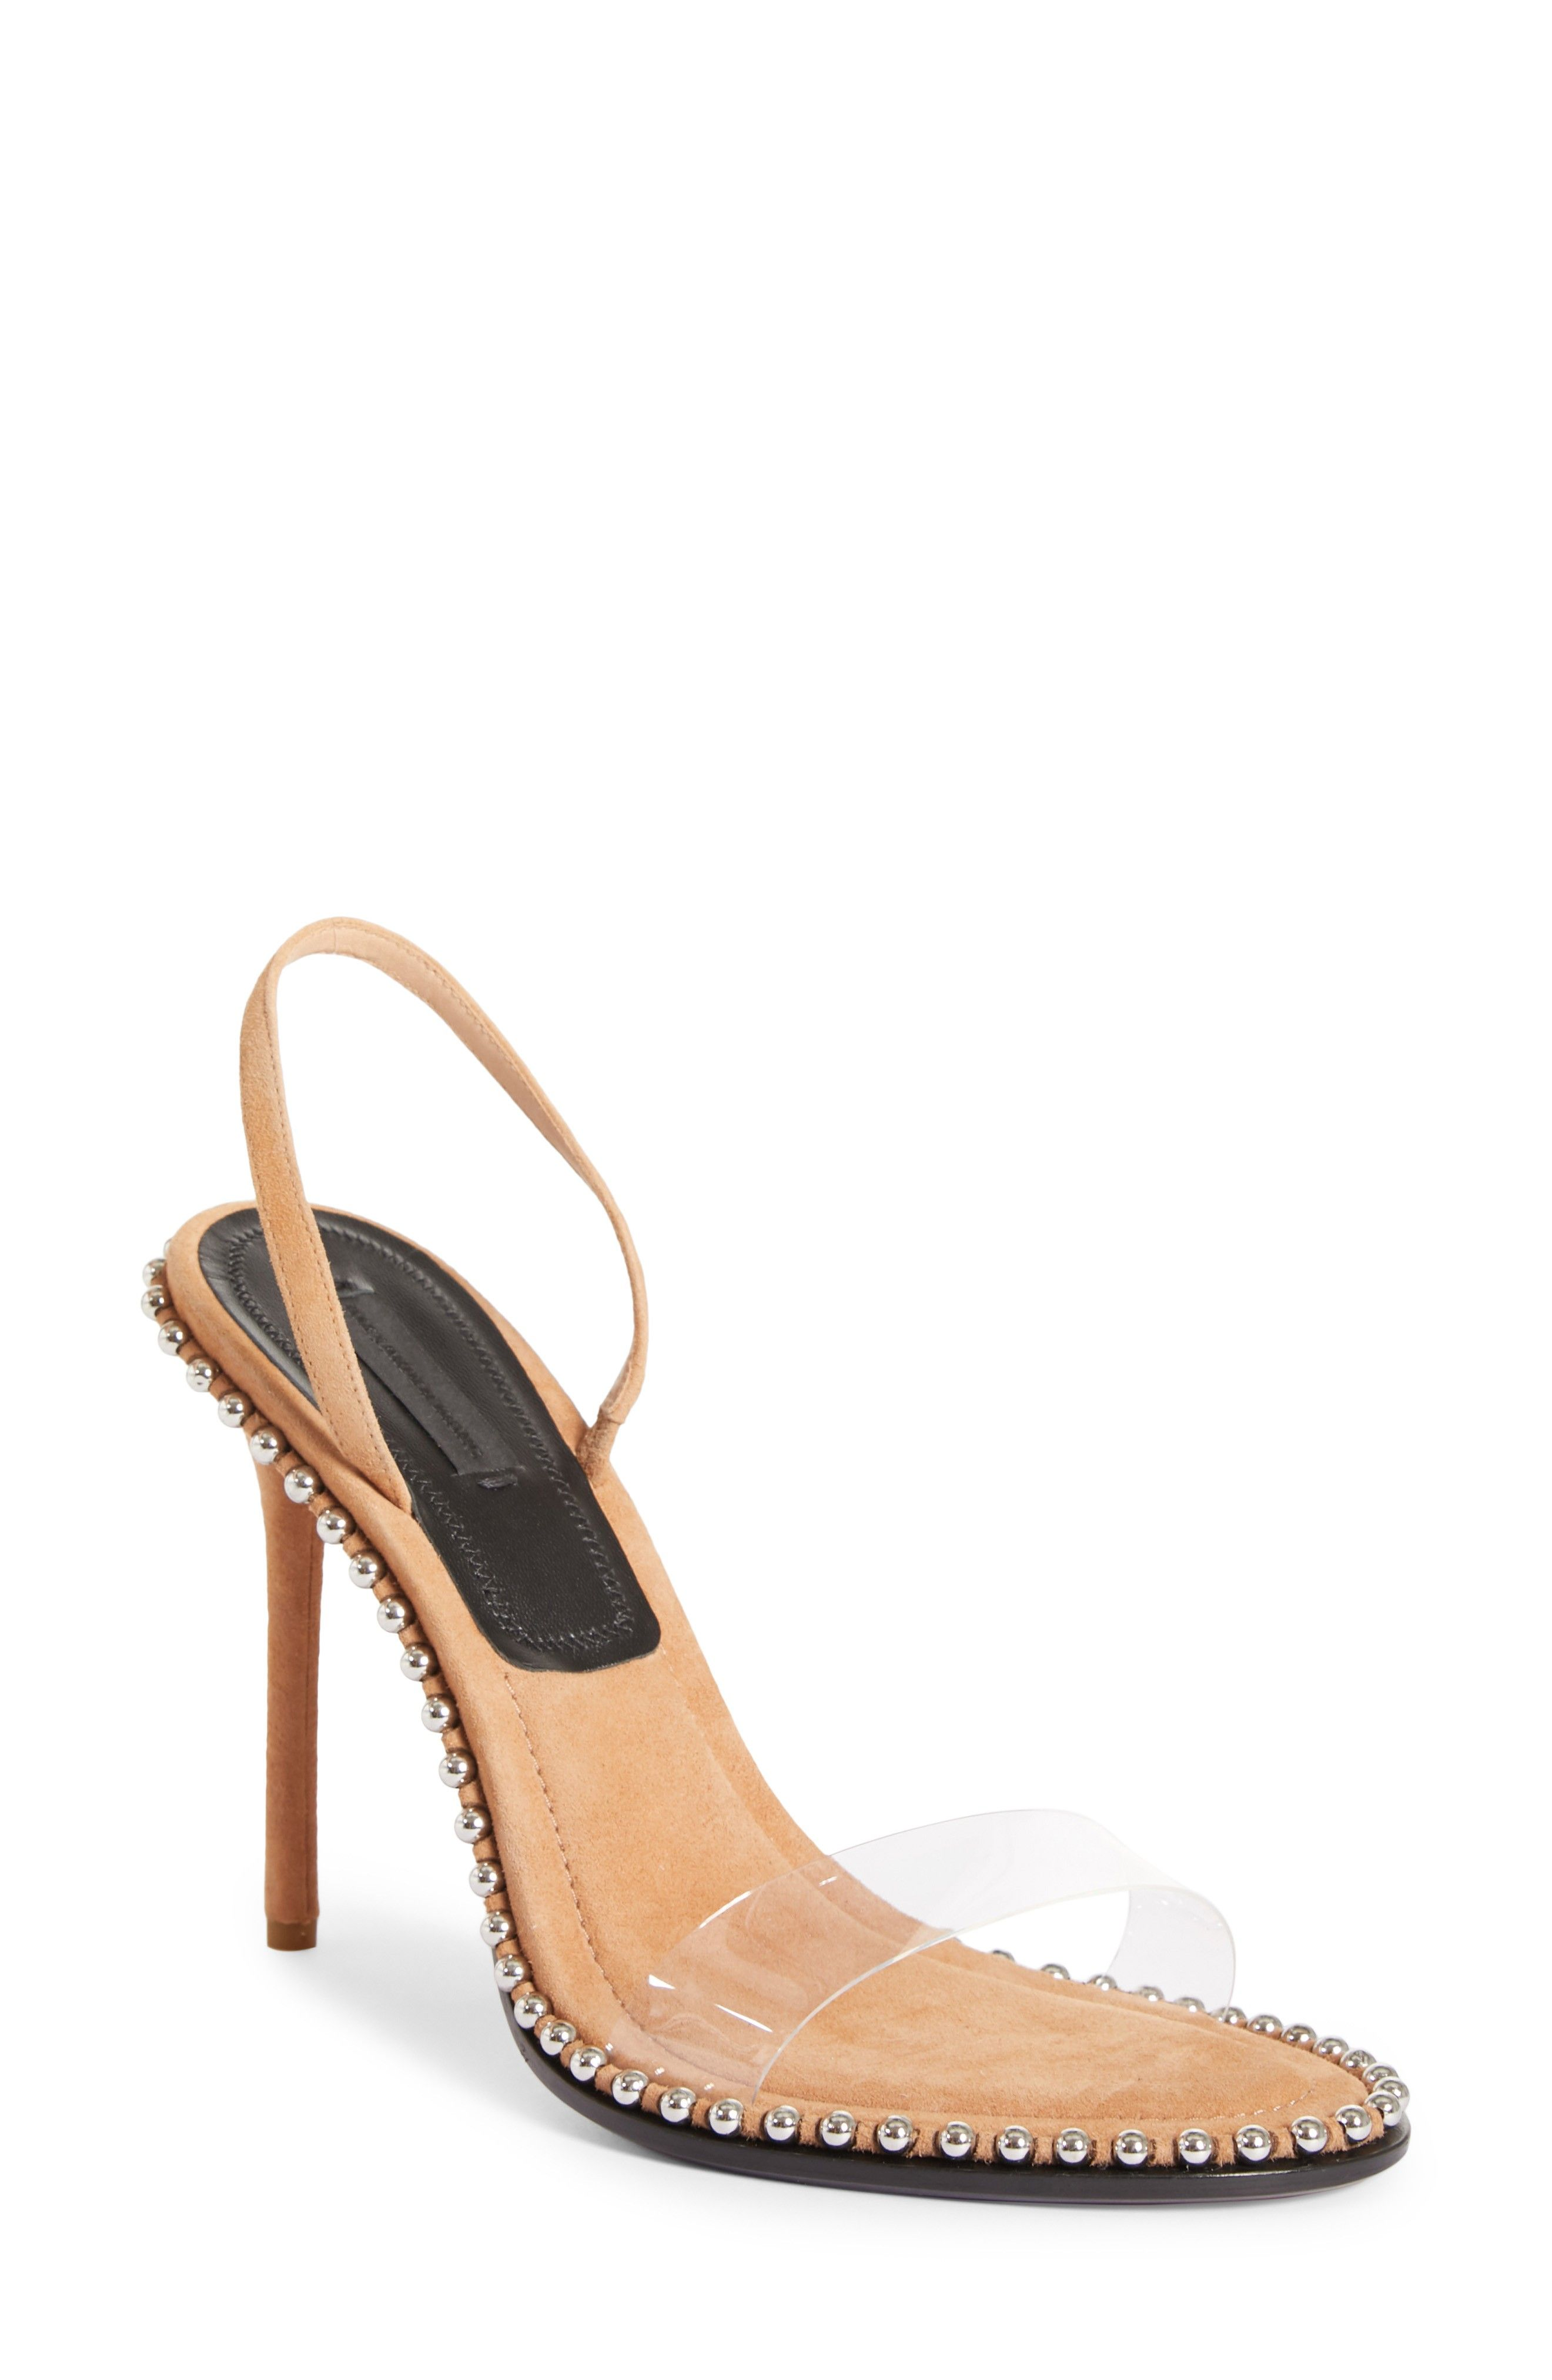 ALEXANDER WANG | Nova Studded Sandal #Shoes #Sandals #Slides #ALEXANDER WANG